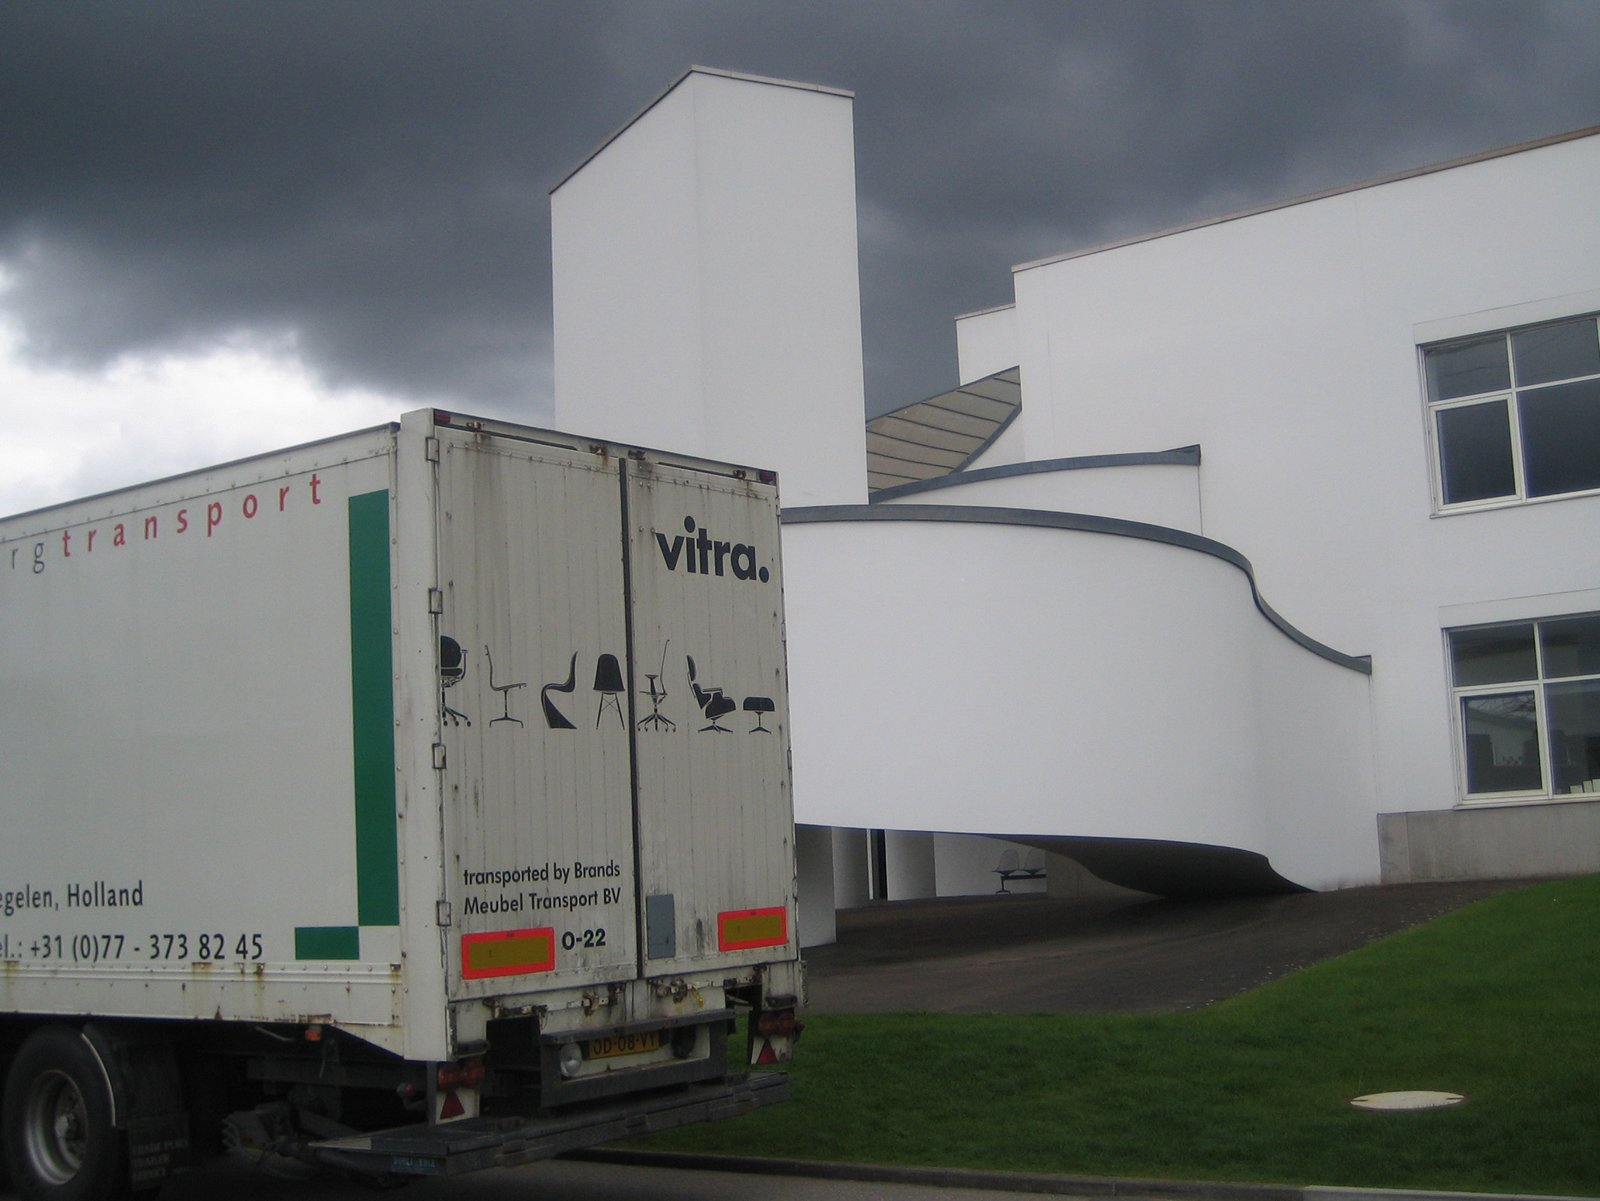 I loved this image of another of Gehry's buildings on campus playing backdrop to a Vitra delivery truck. The darkening sky gives the whole affair a rather ominous look.  Touring the Vitra Campus  by Aaron Britt